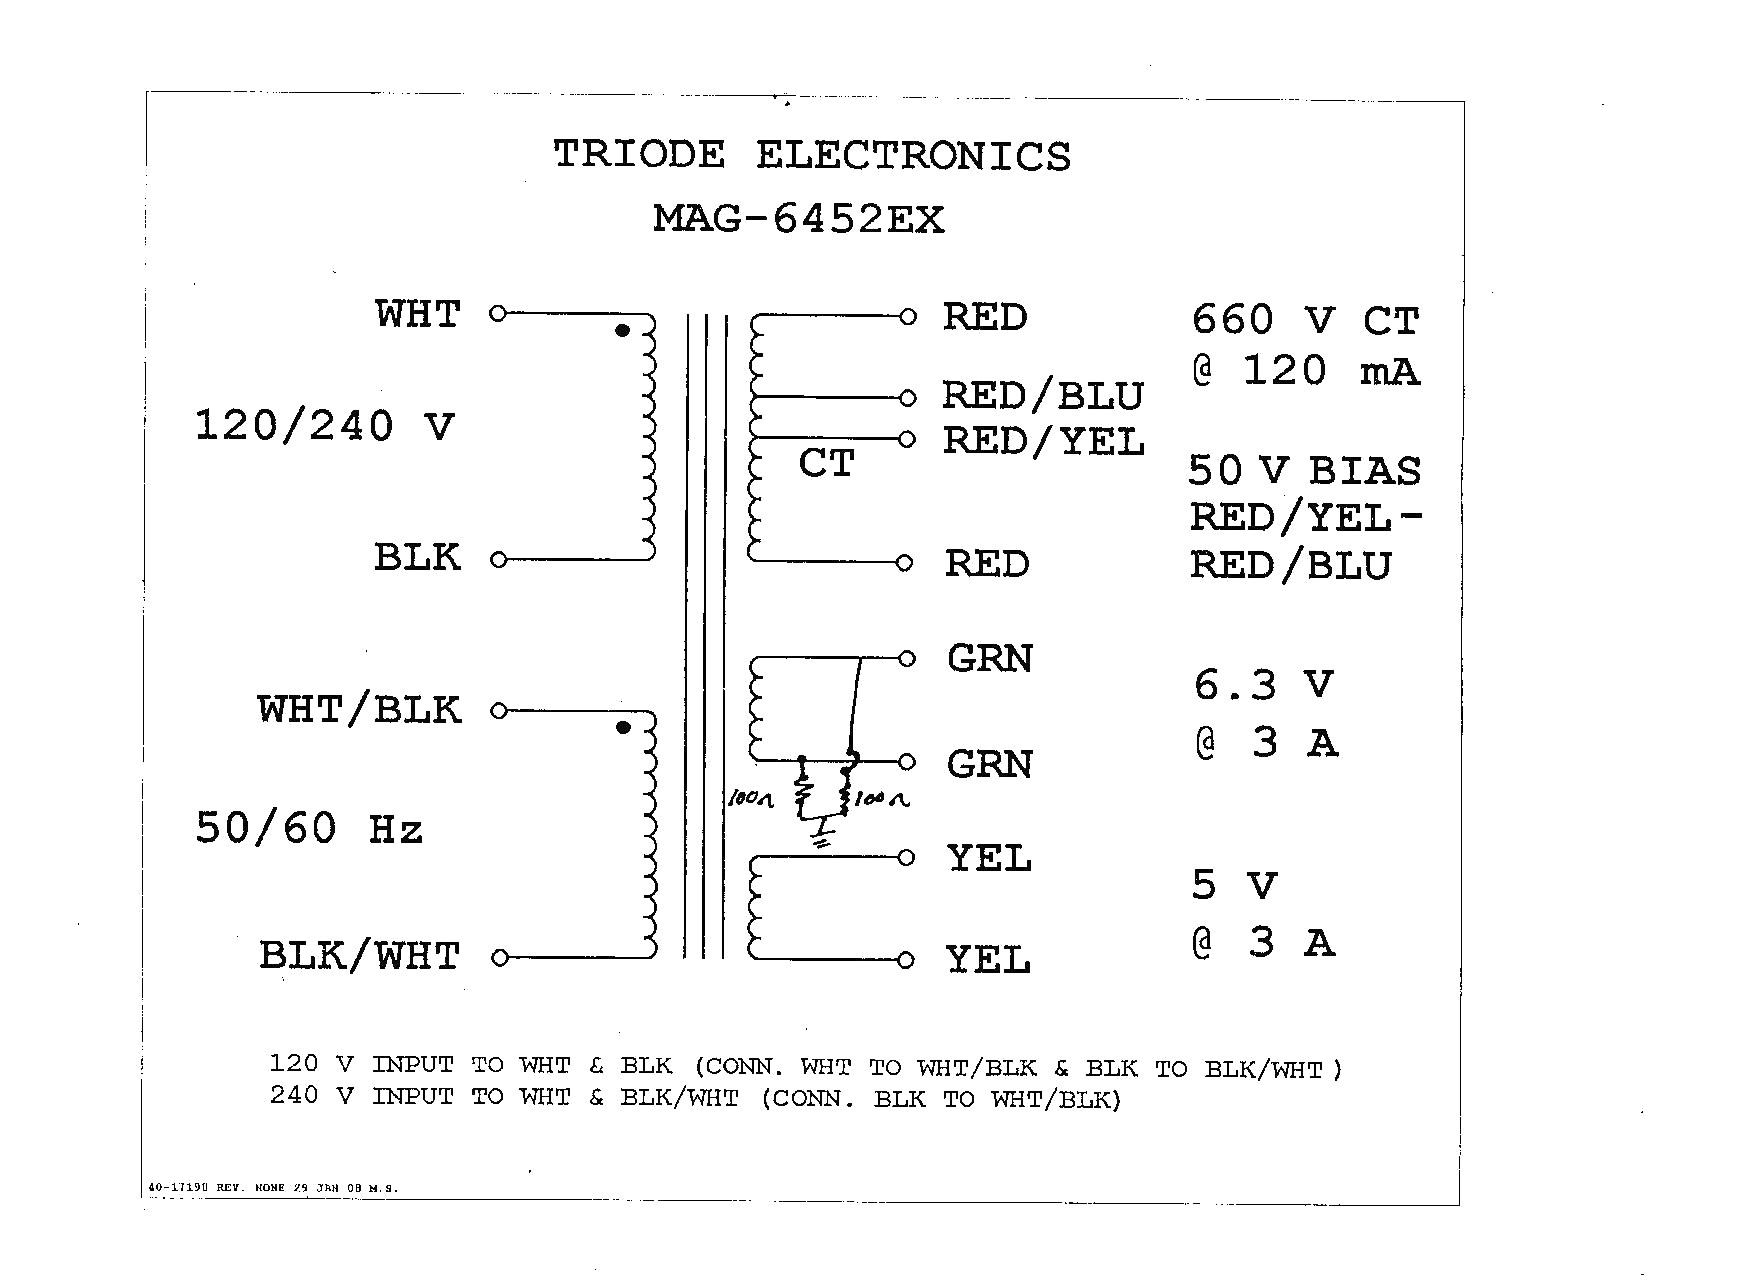 45 kva transformer wiring diagram Download-45 Kva Transformer Wiring Diagram Kva Transformer Wiring Transformer Wire Diagram Wiring Diagrams Schematics Fancy 8-d